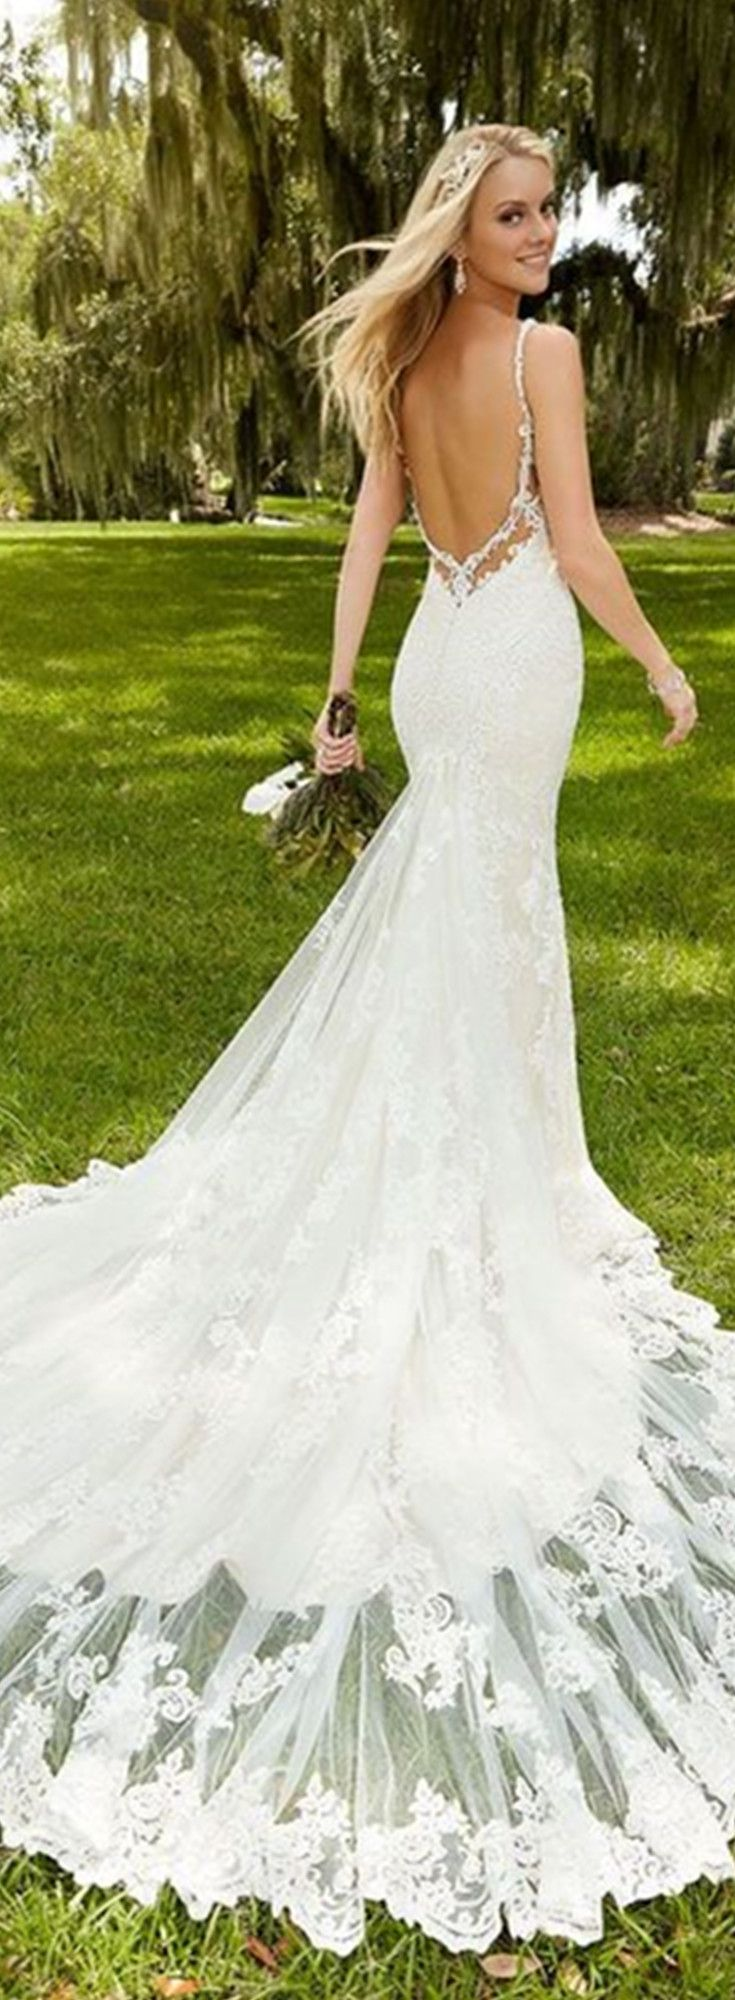 SPAGHETTI STRAPS LONG TAIL SEXY LOW BACK MERMAID LACE WEDDING DRESS - if I'm skinning I want this dress